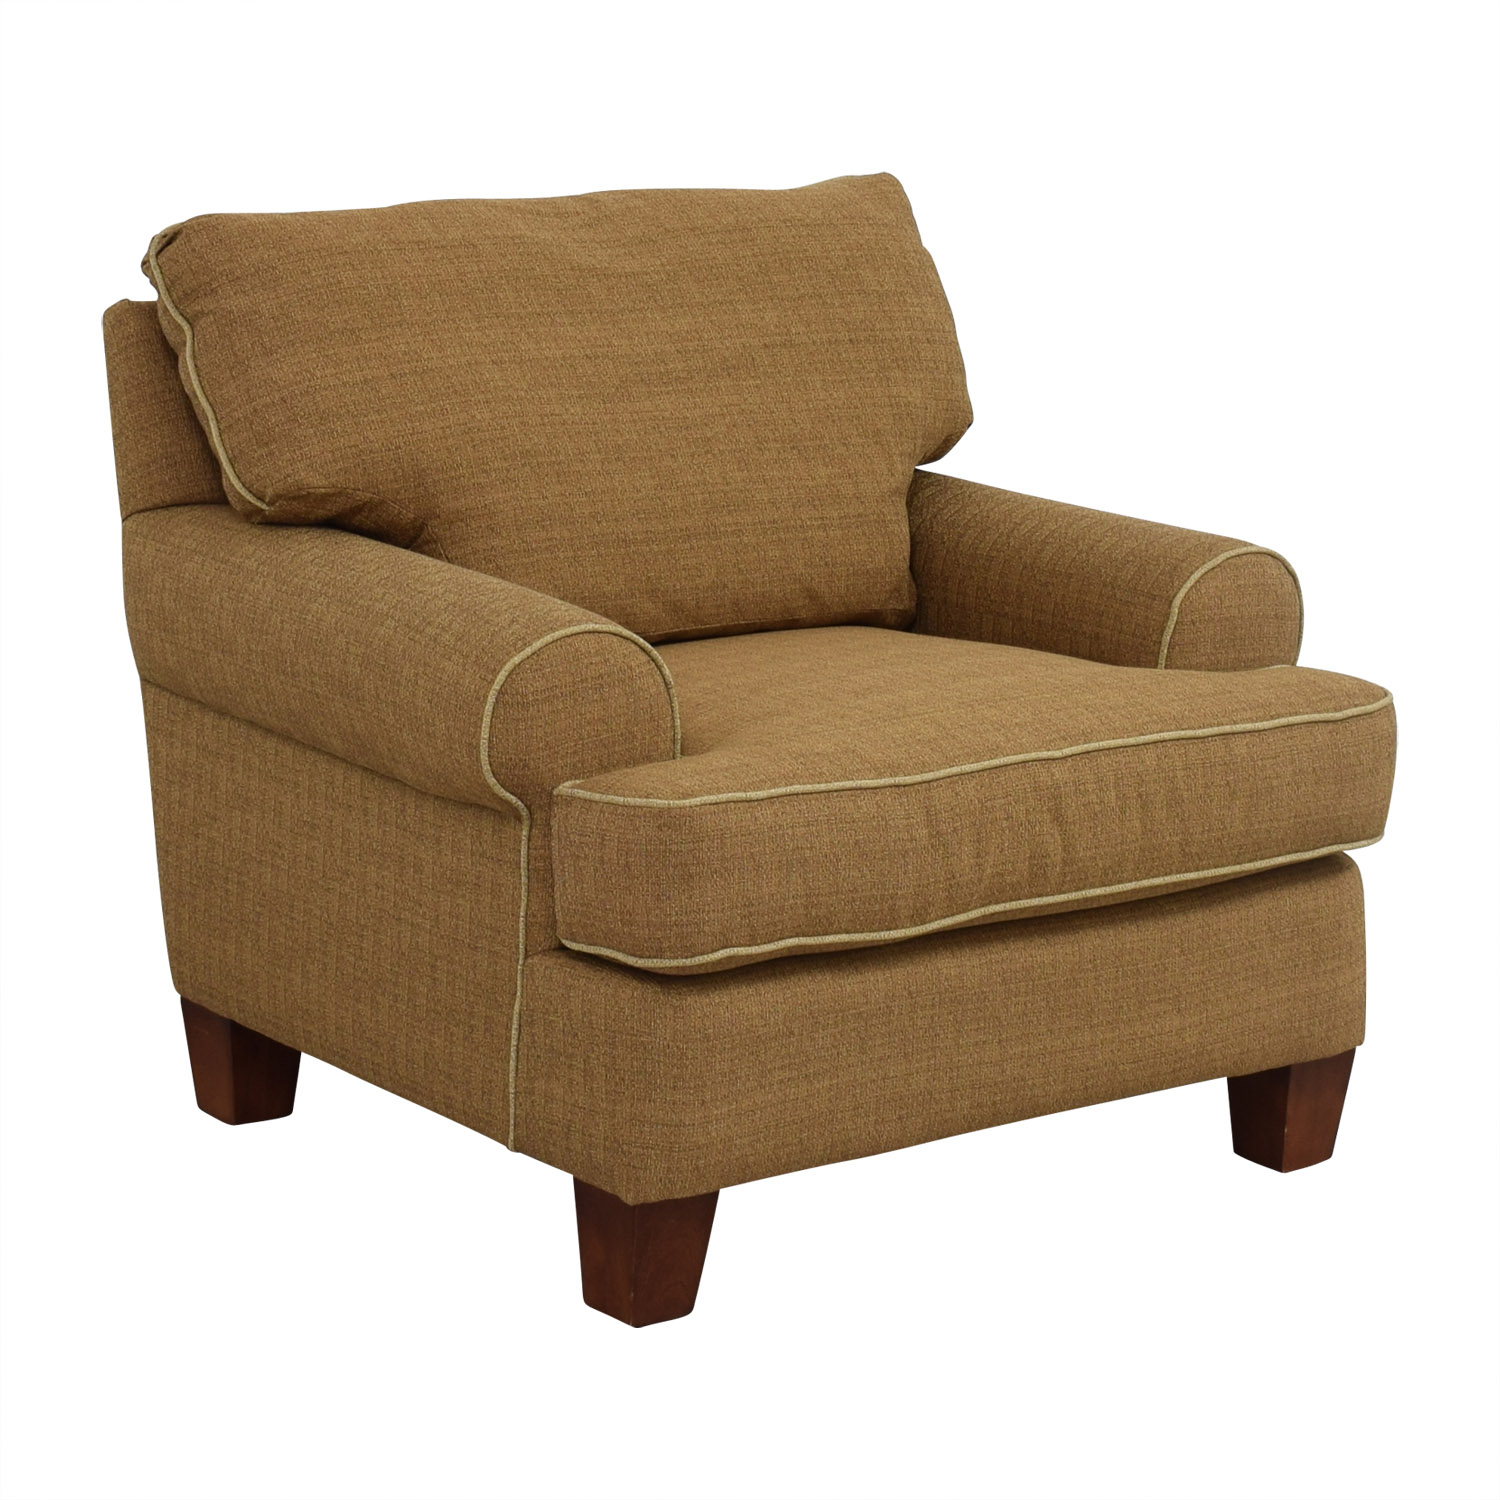 buy Braxton Culler Braxton Culler Brown Upholstered Chair online